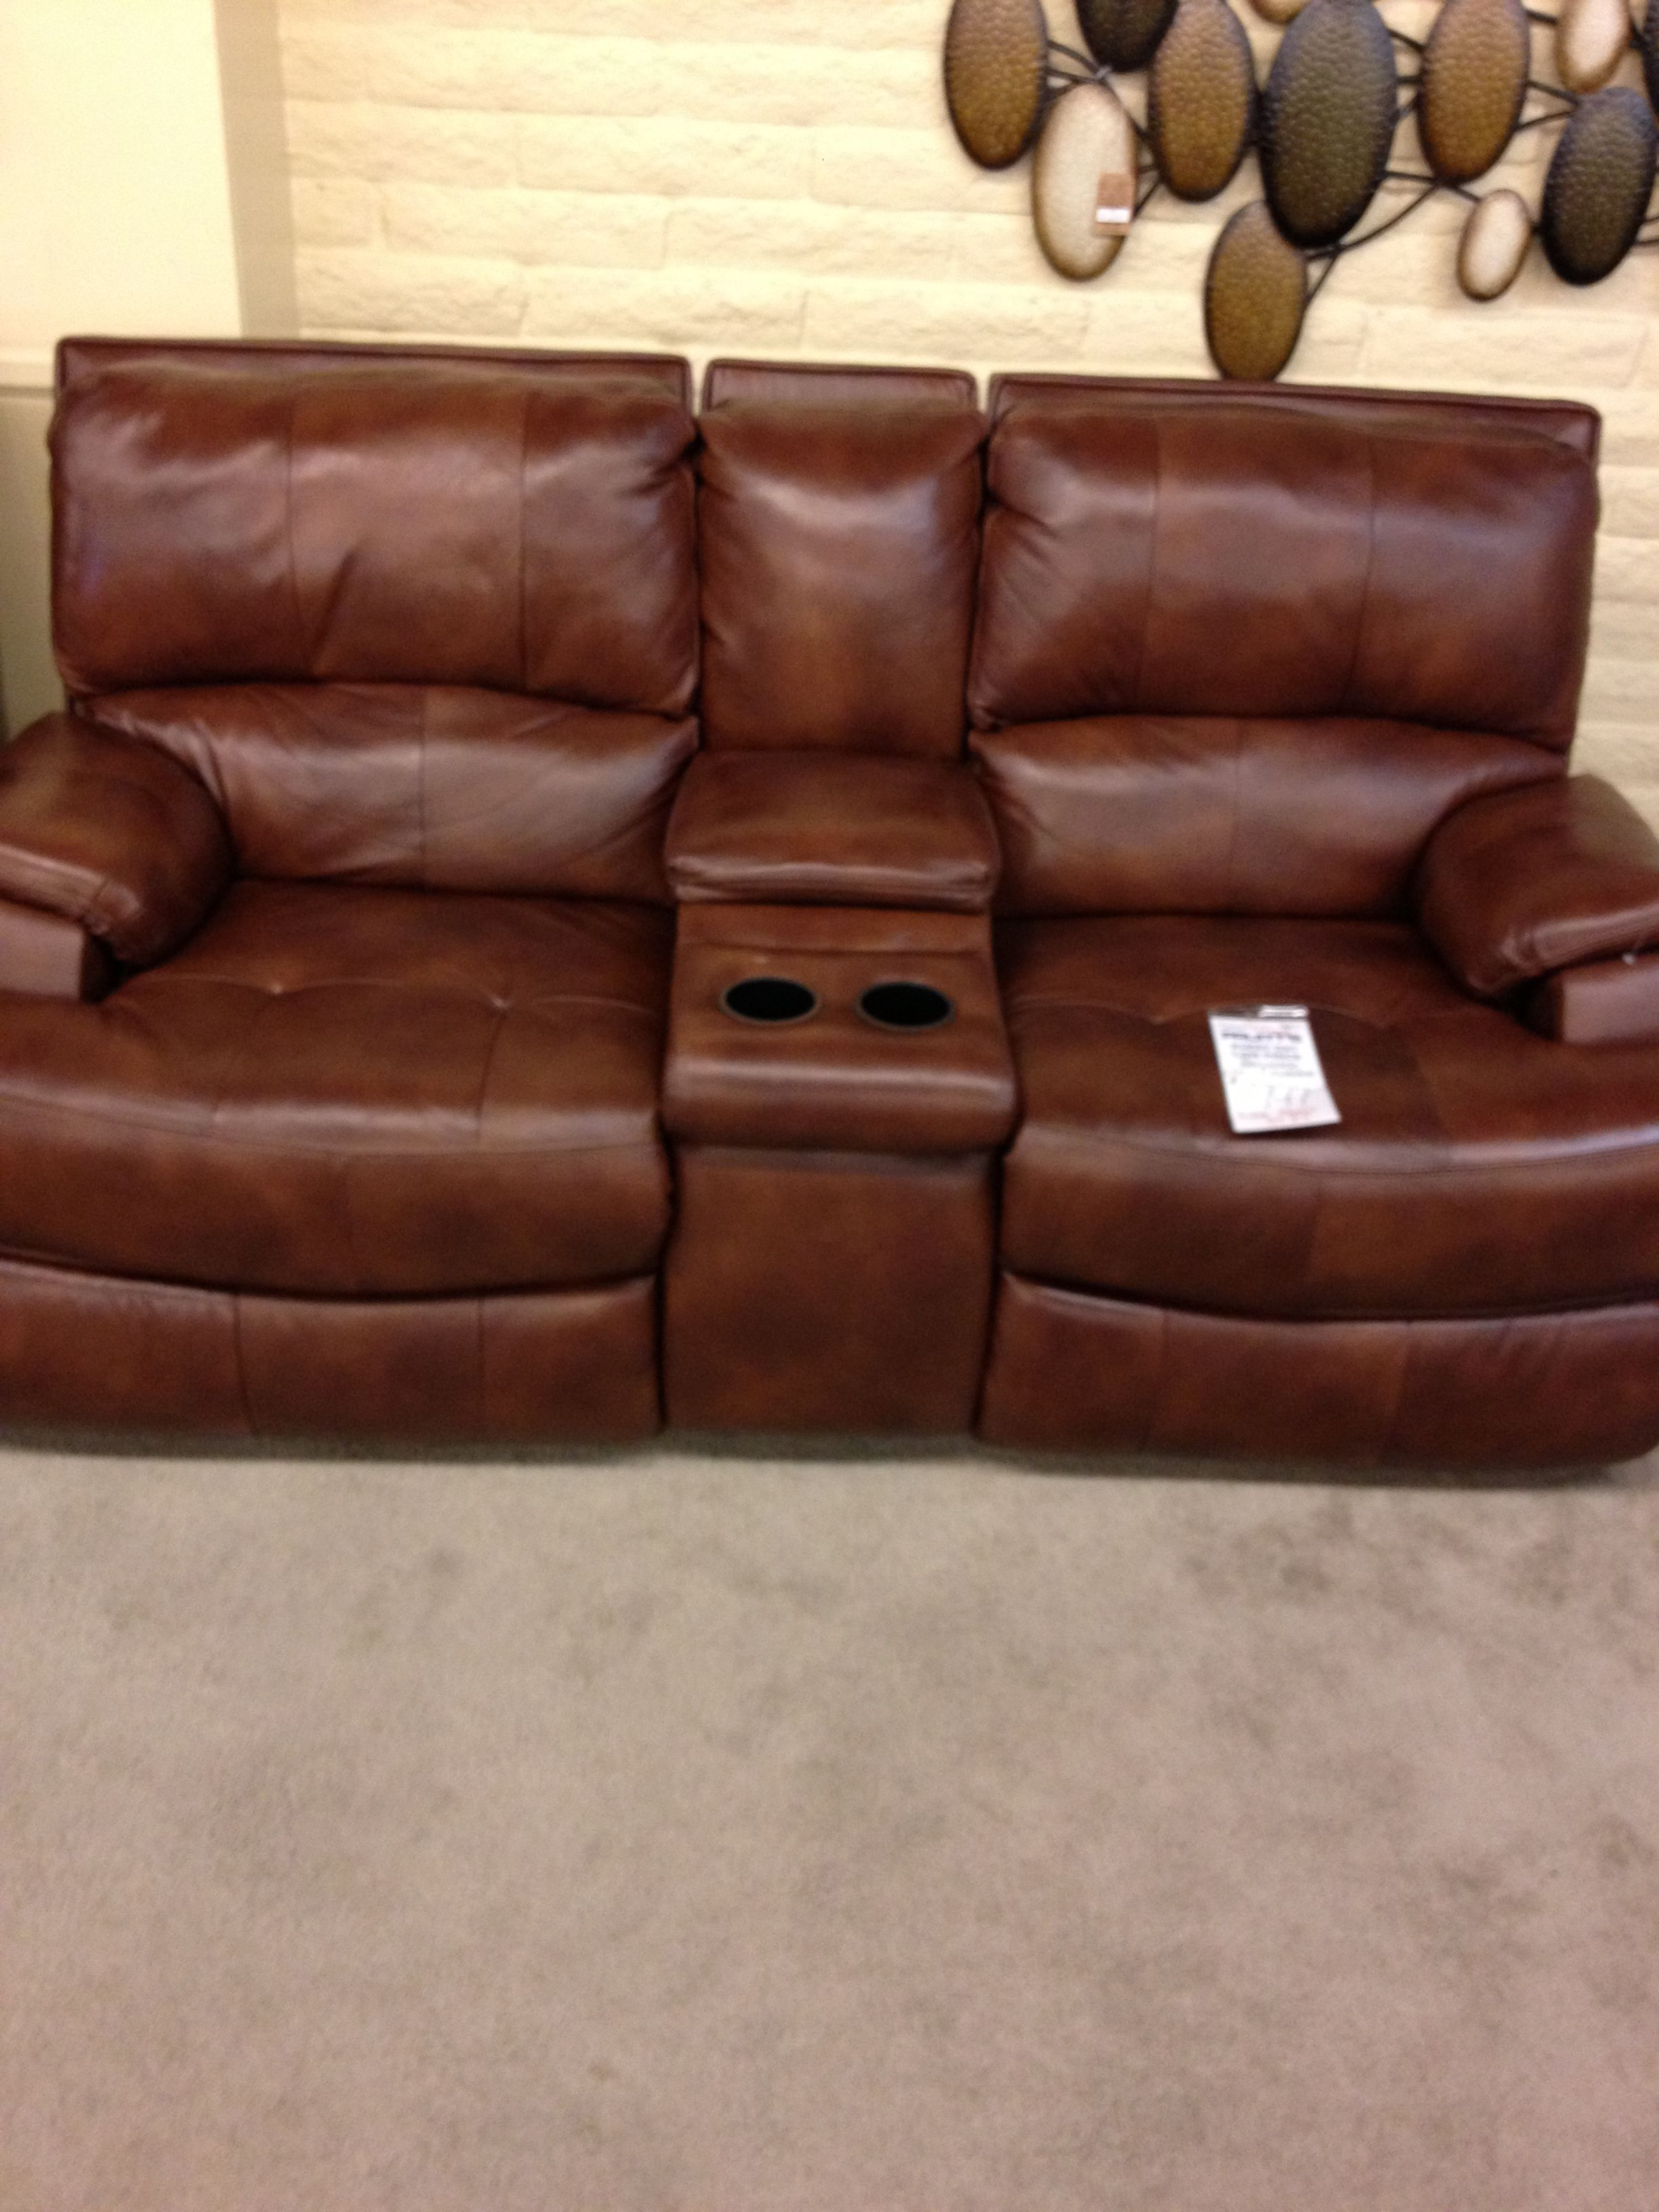 Pruitt S Furniture Loveseat Recliners With Console Man Cave Decor Loveseat Recliners Decor